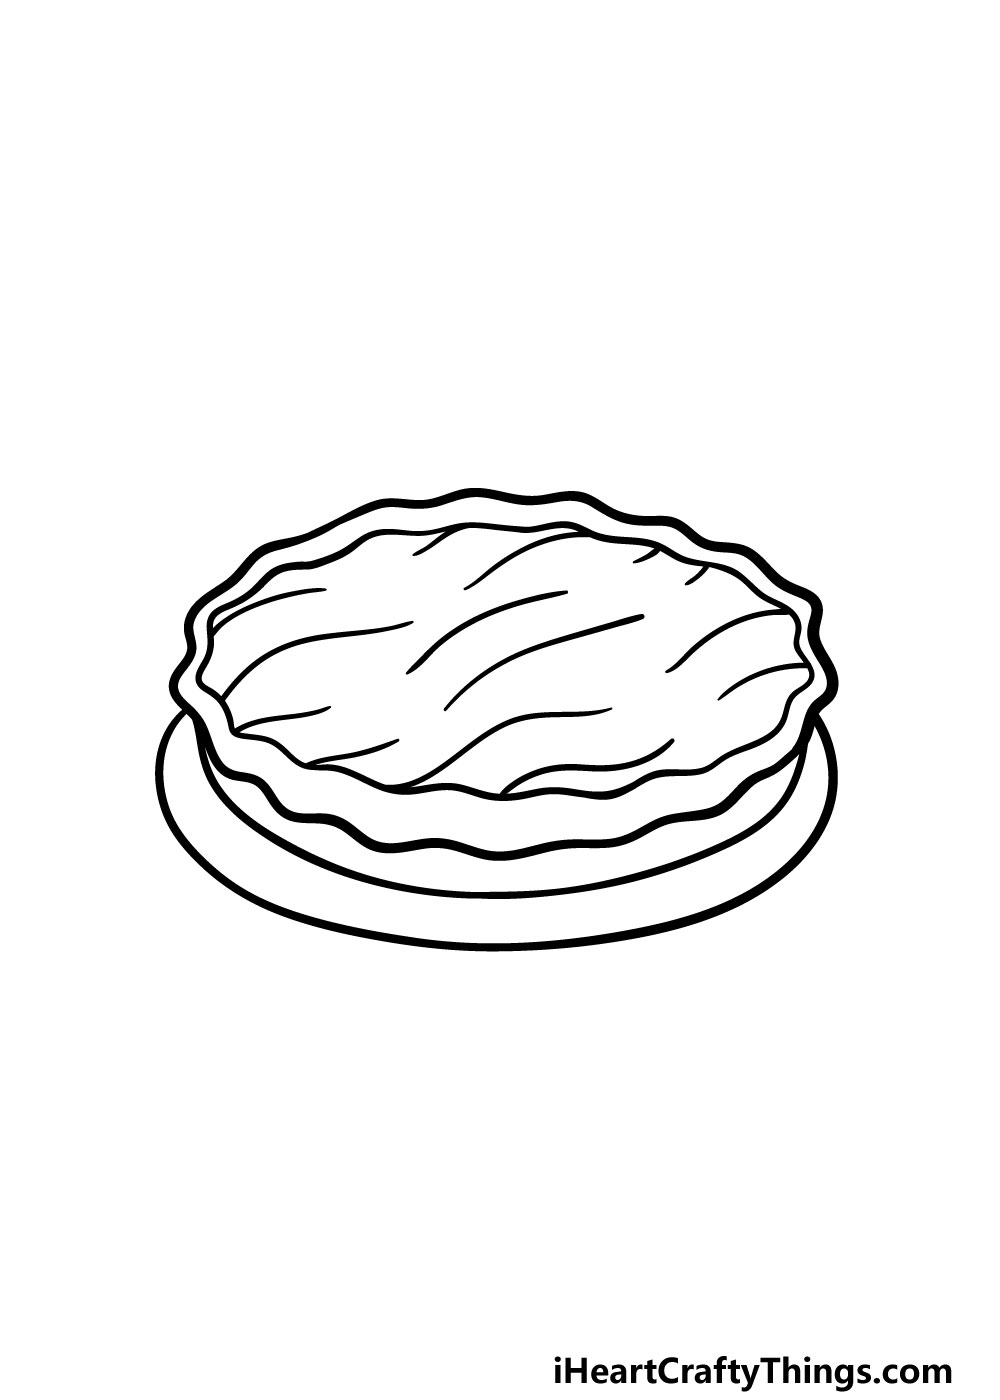 drawing a pie step 3